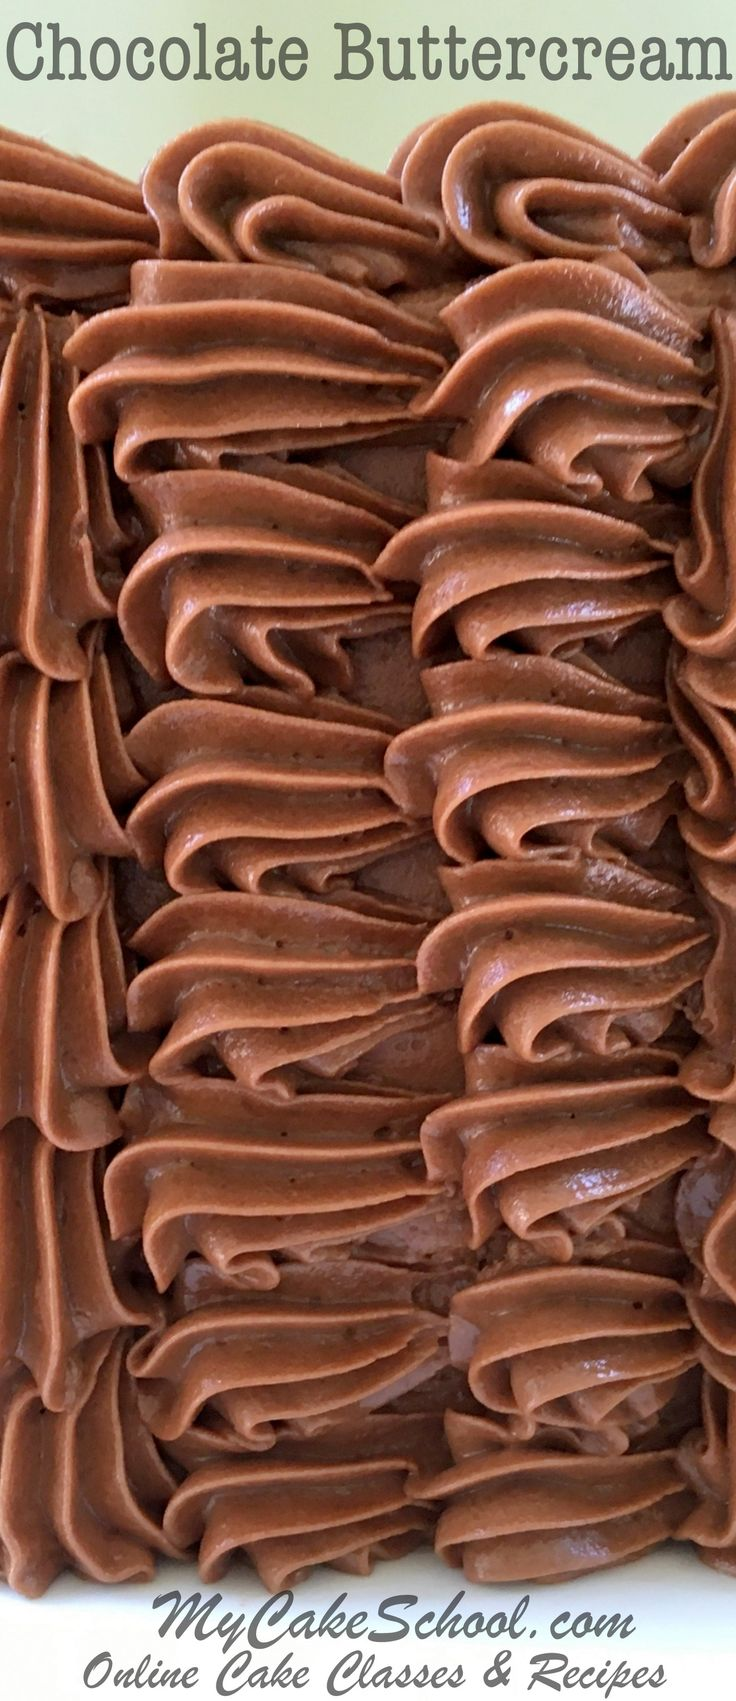 DELICIOUS Chocolate Buttercream Recipe by MyCakeSchool.com. Tastes fantastic and pipes beautifully! - MyCakeSchool.com Online Cake Decorating Classes & Recipes!